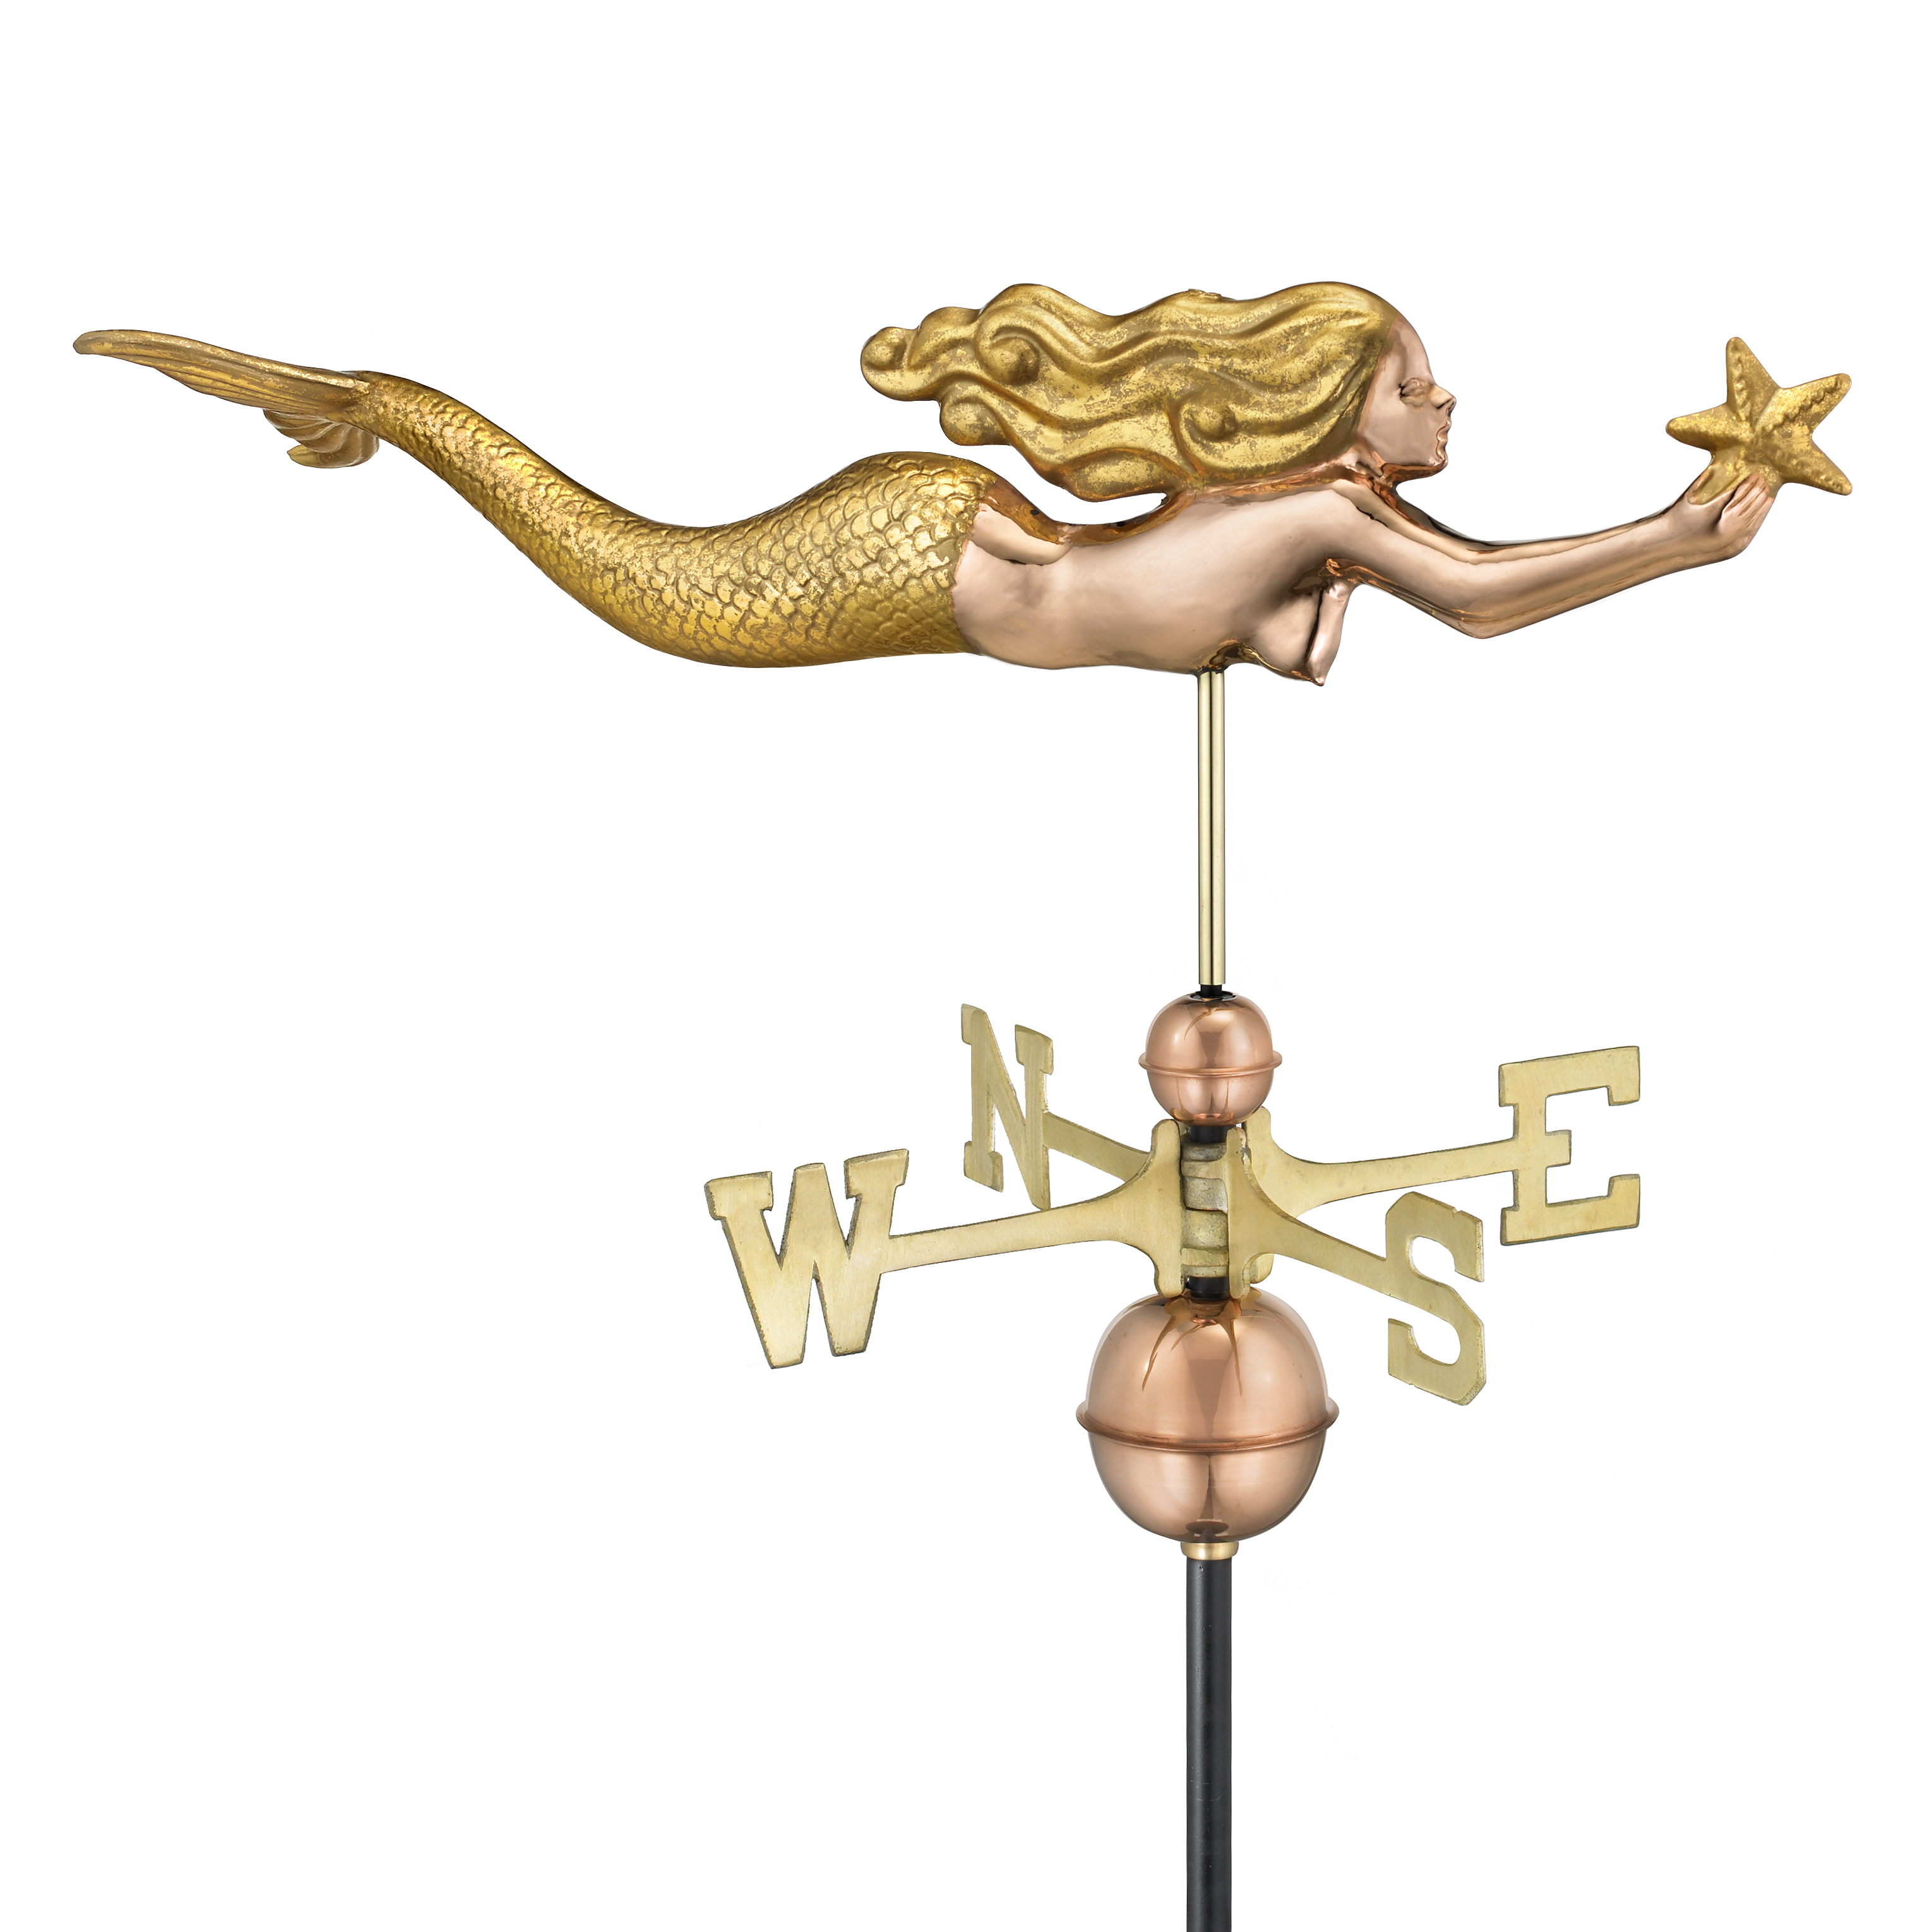 Mermaid with Starfish Weathervane - Gold Leaf Accents (966GL)